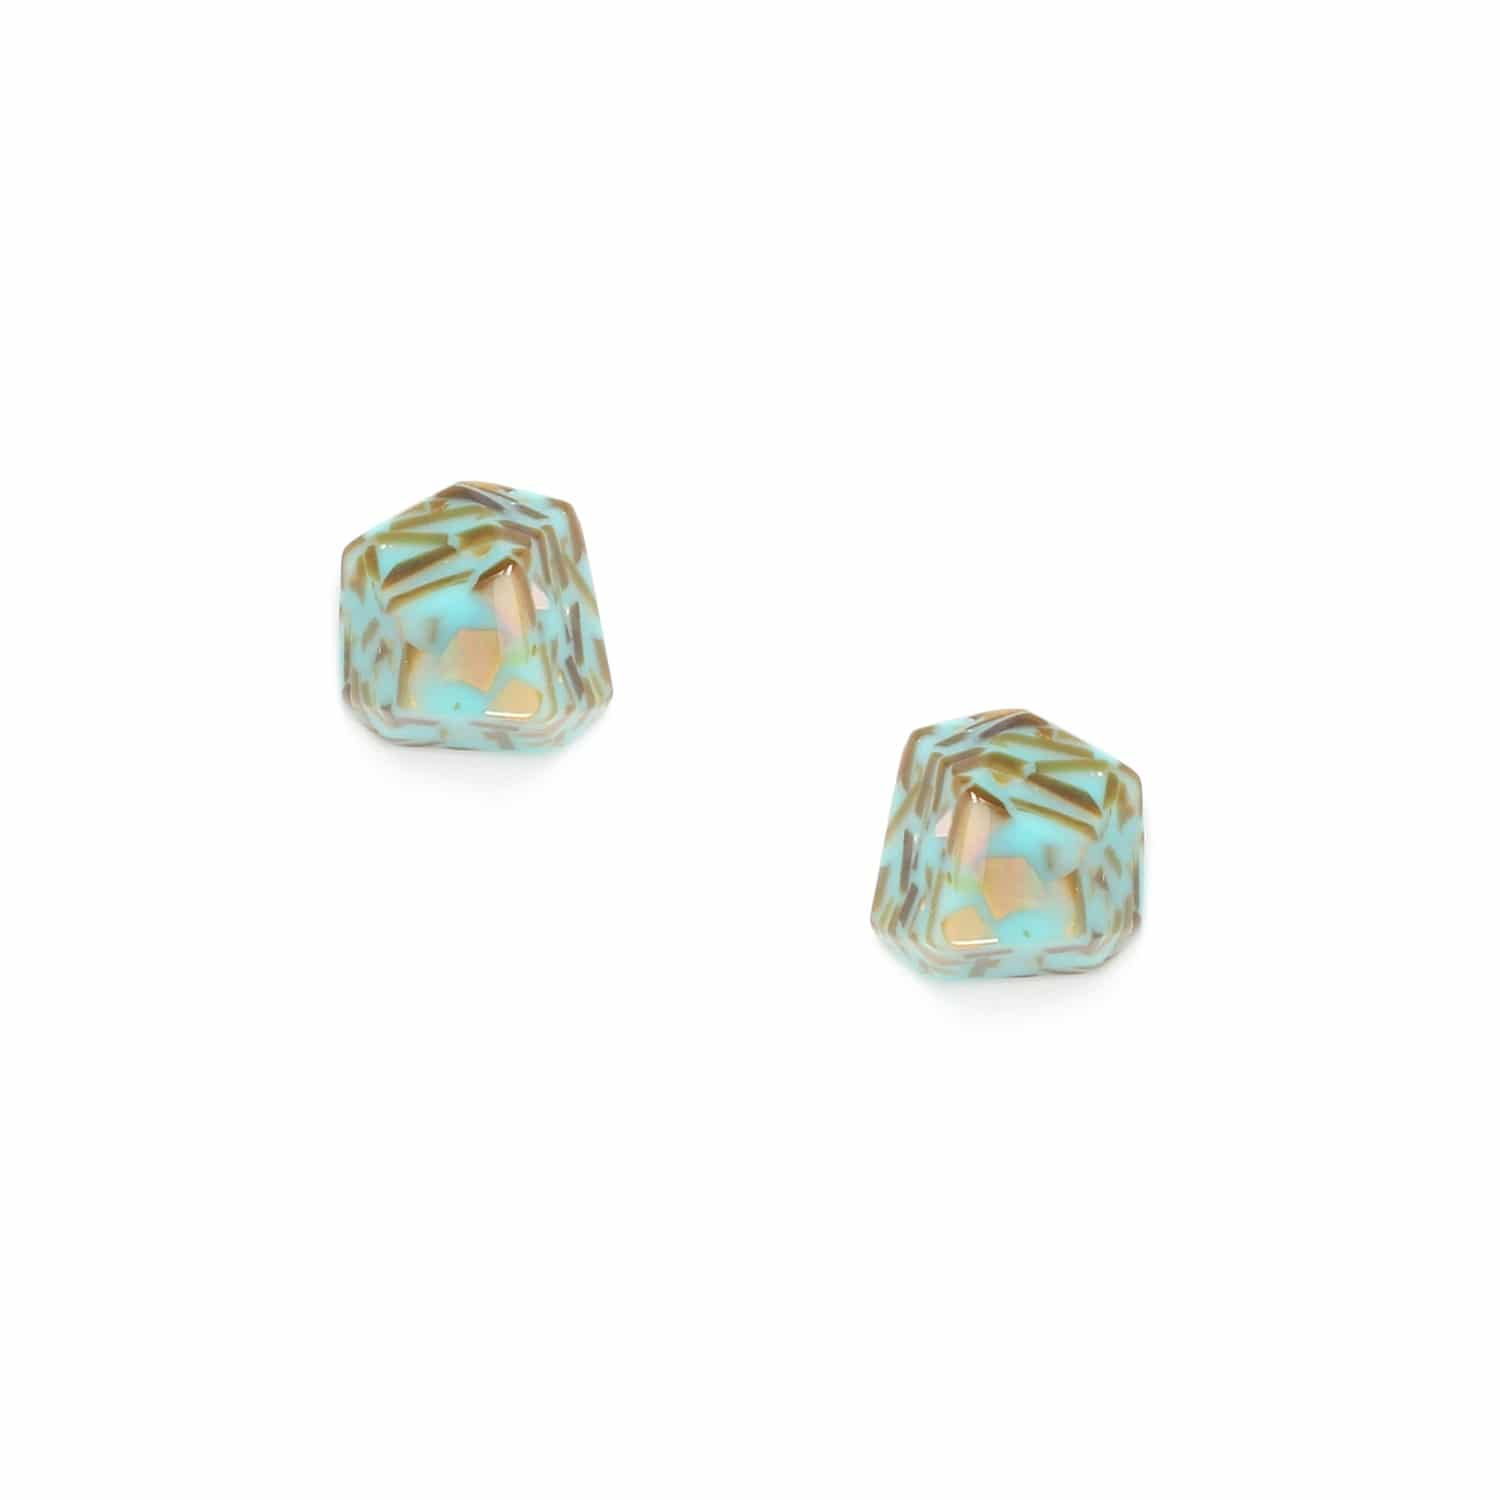 OCTO PUCES  boucles d'oreilles terrazzo turquoise